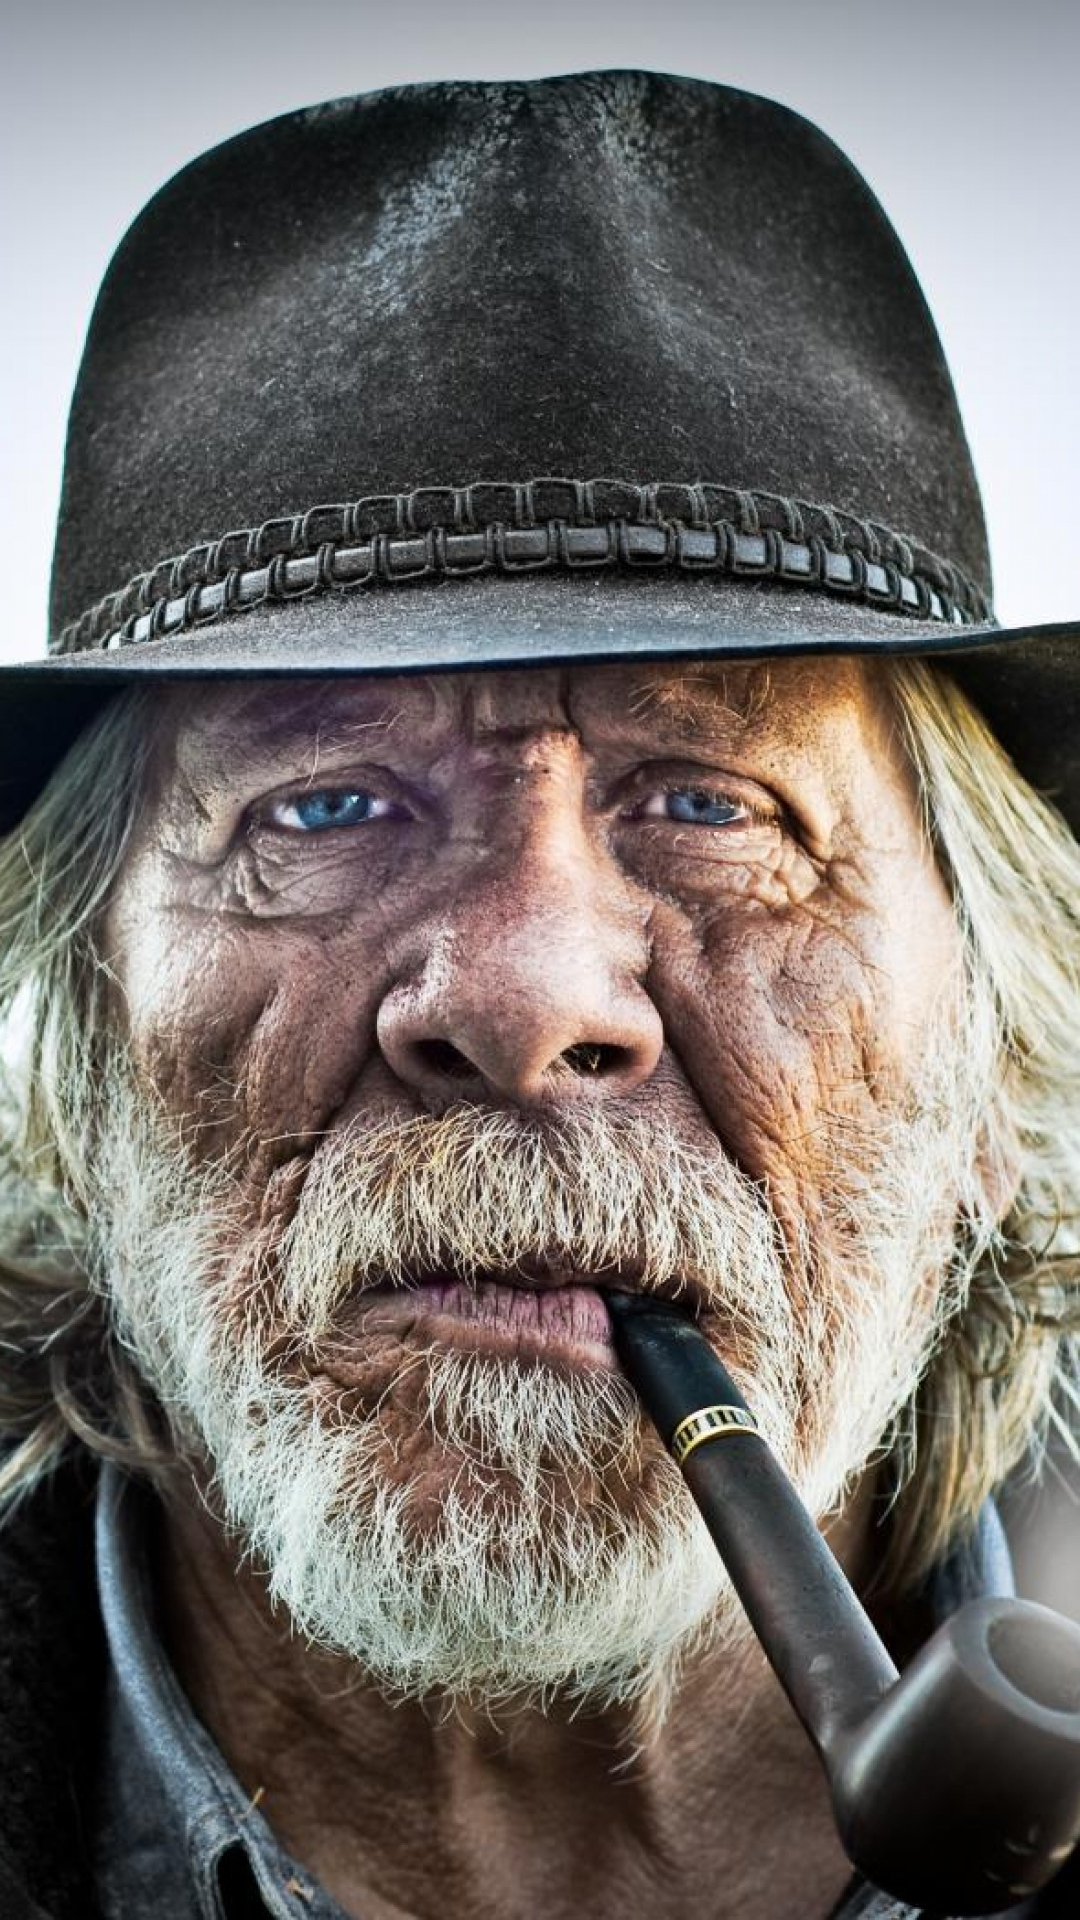 Download Wallpaper 1080x1920 old man portrait pipe hat Sony Xperia 1080x1920